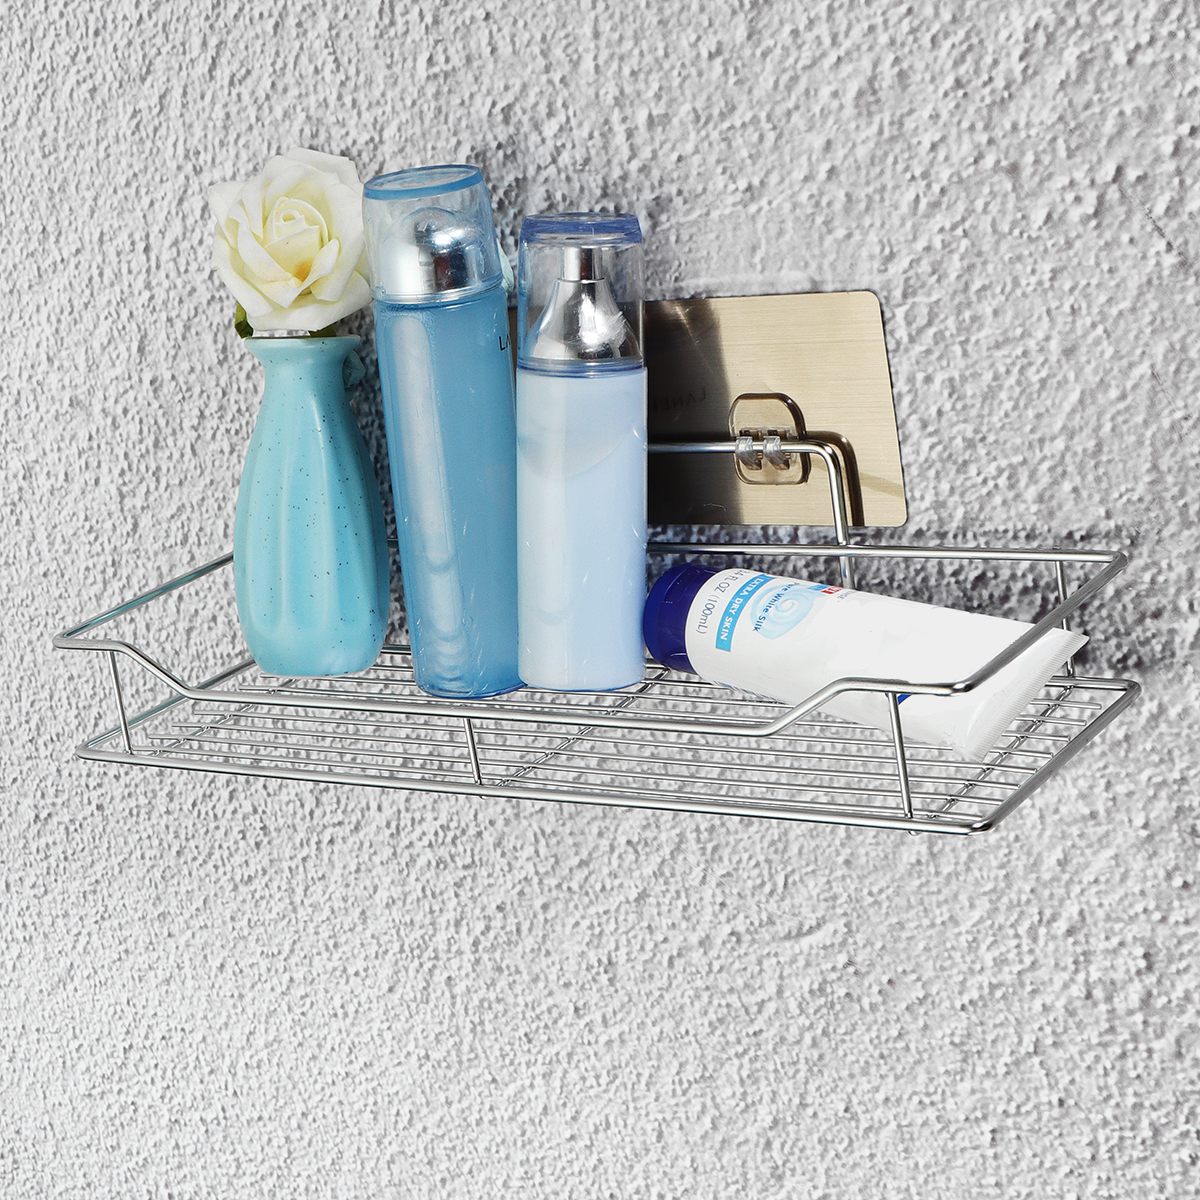 Stainless Steel Bathroom Kitchen Shower Shelf Storage Rack Non Rust Suction Basket Caddy Tidy